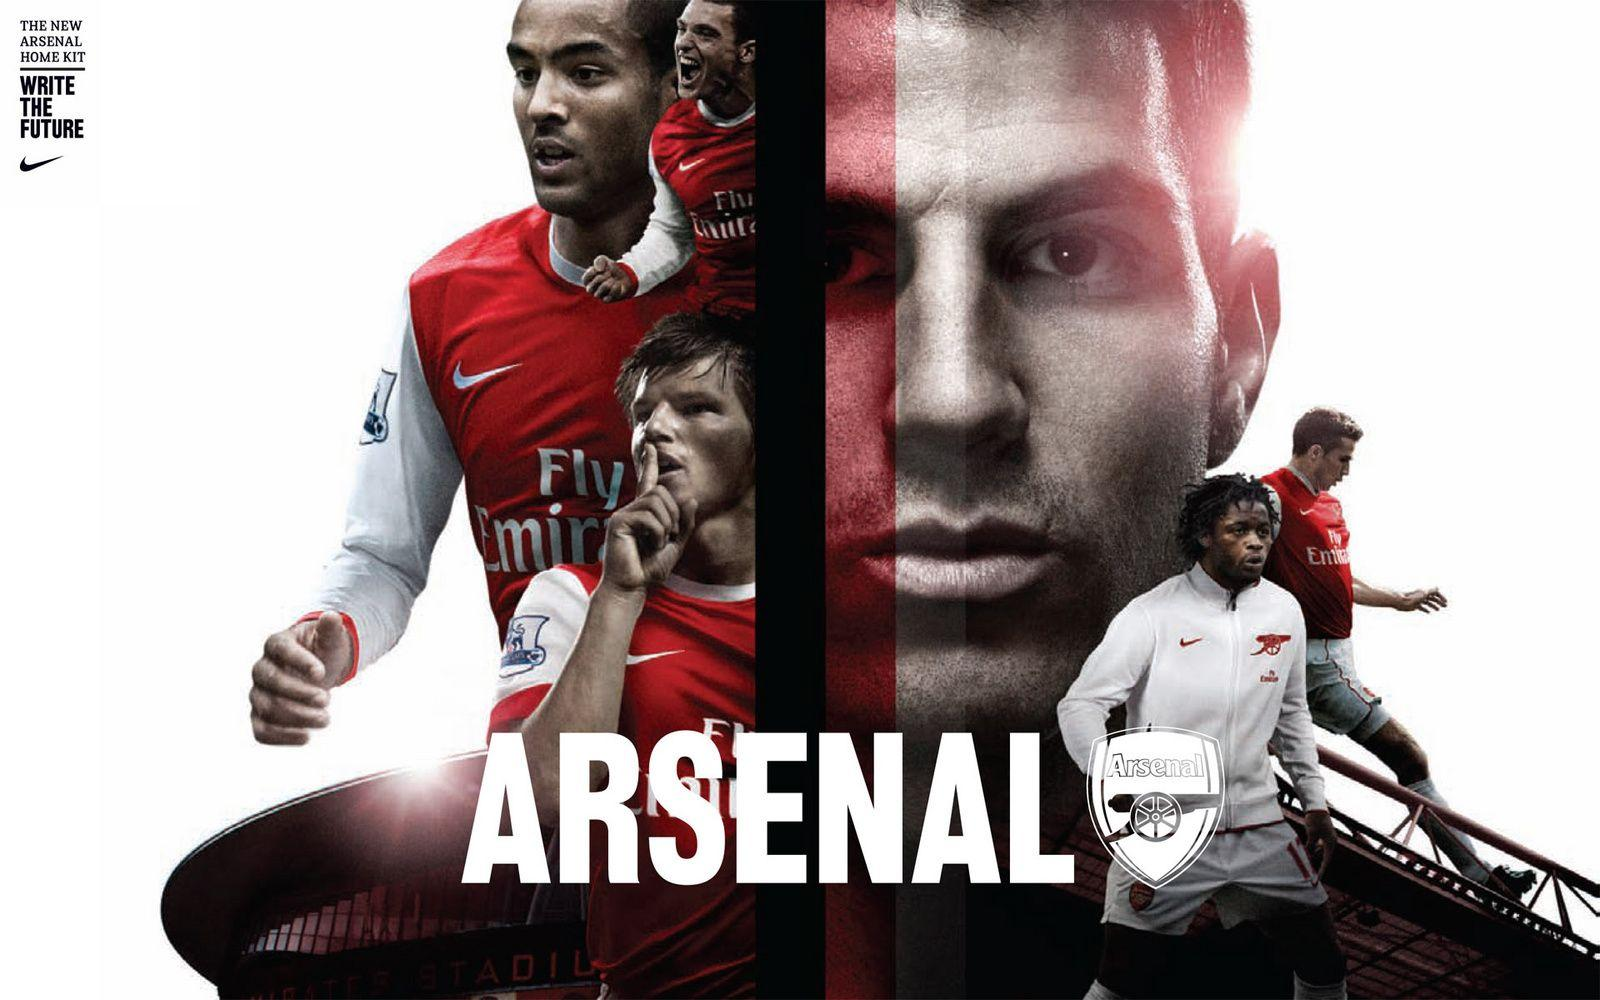 Arsenal Wallpapers 2012 Hd Wallpapers